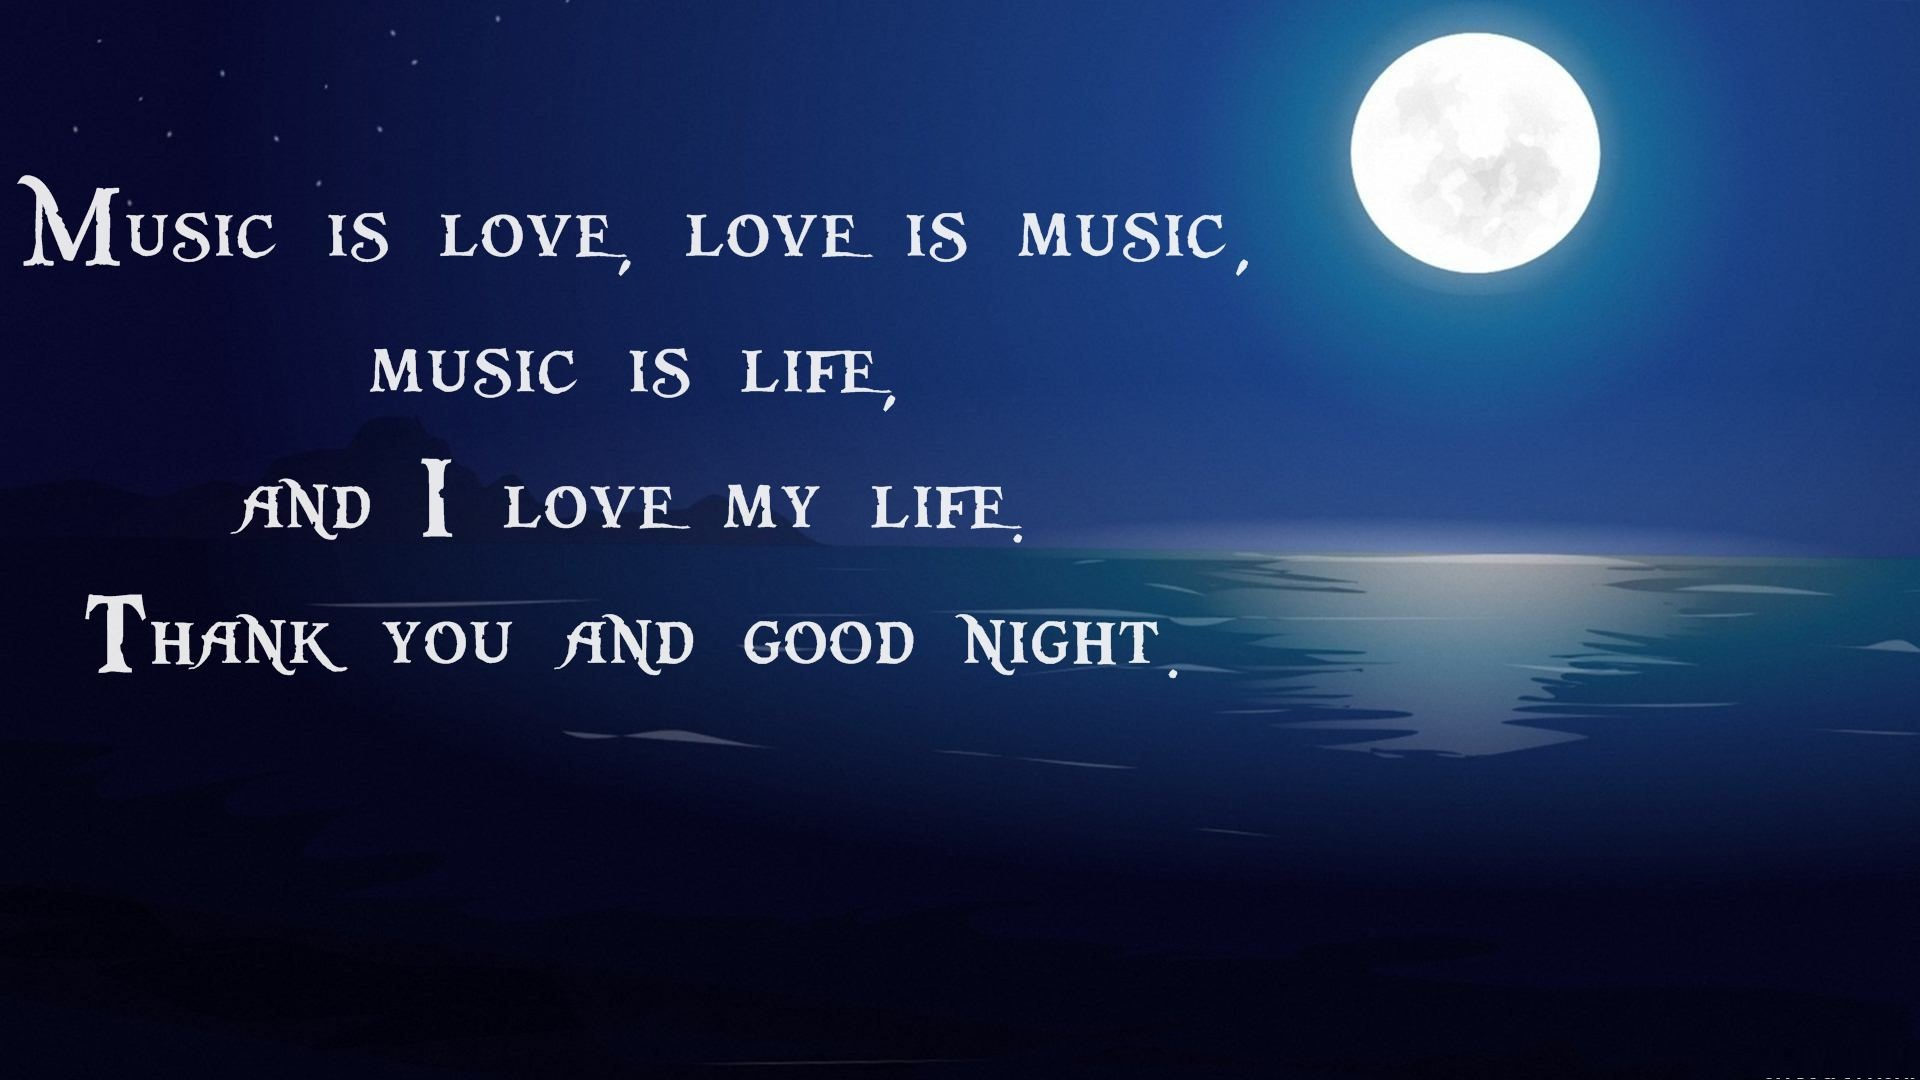 Goodnight My Love Wallpaper Image : Good Night Wallpapers HD with quotes and Wishes